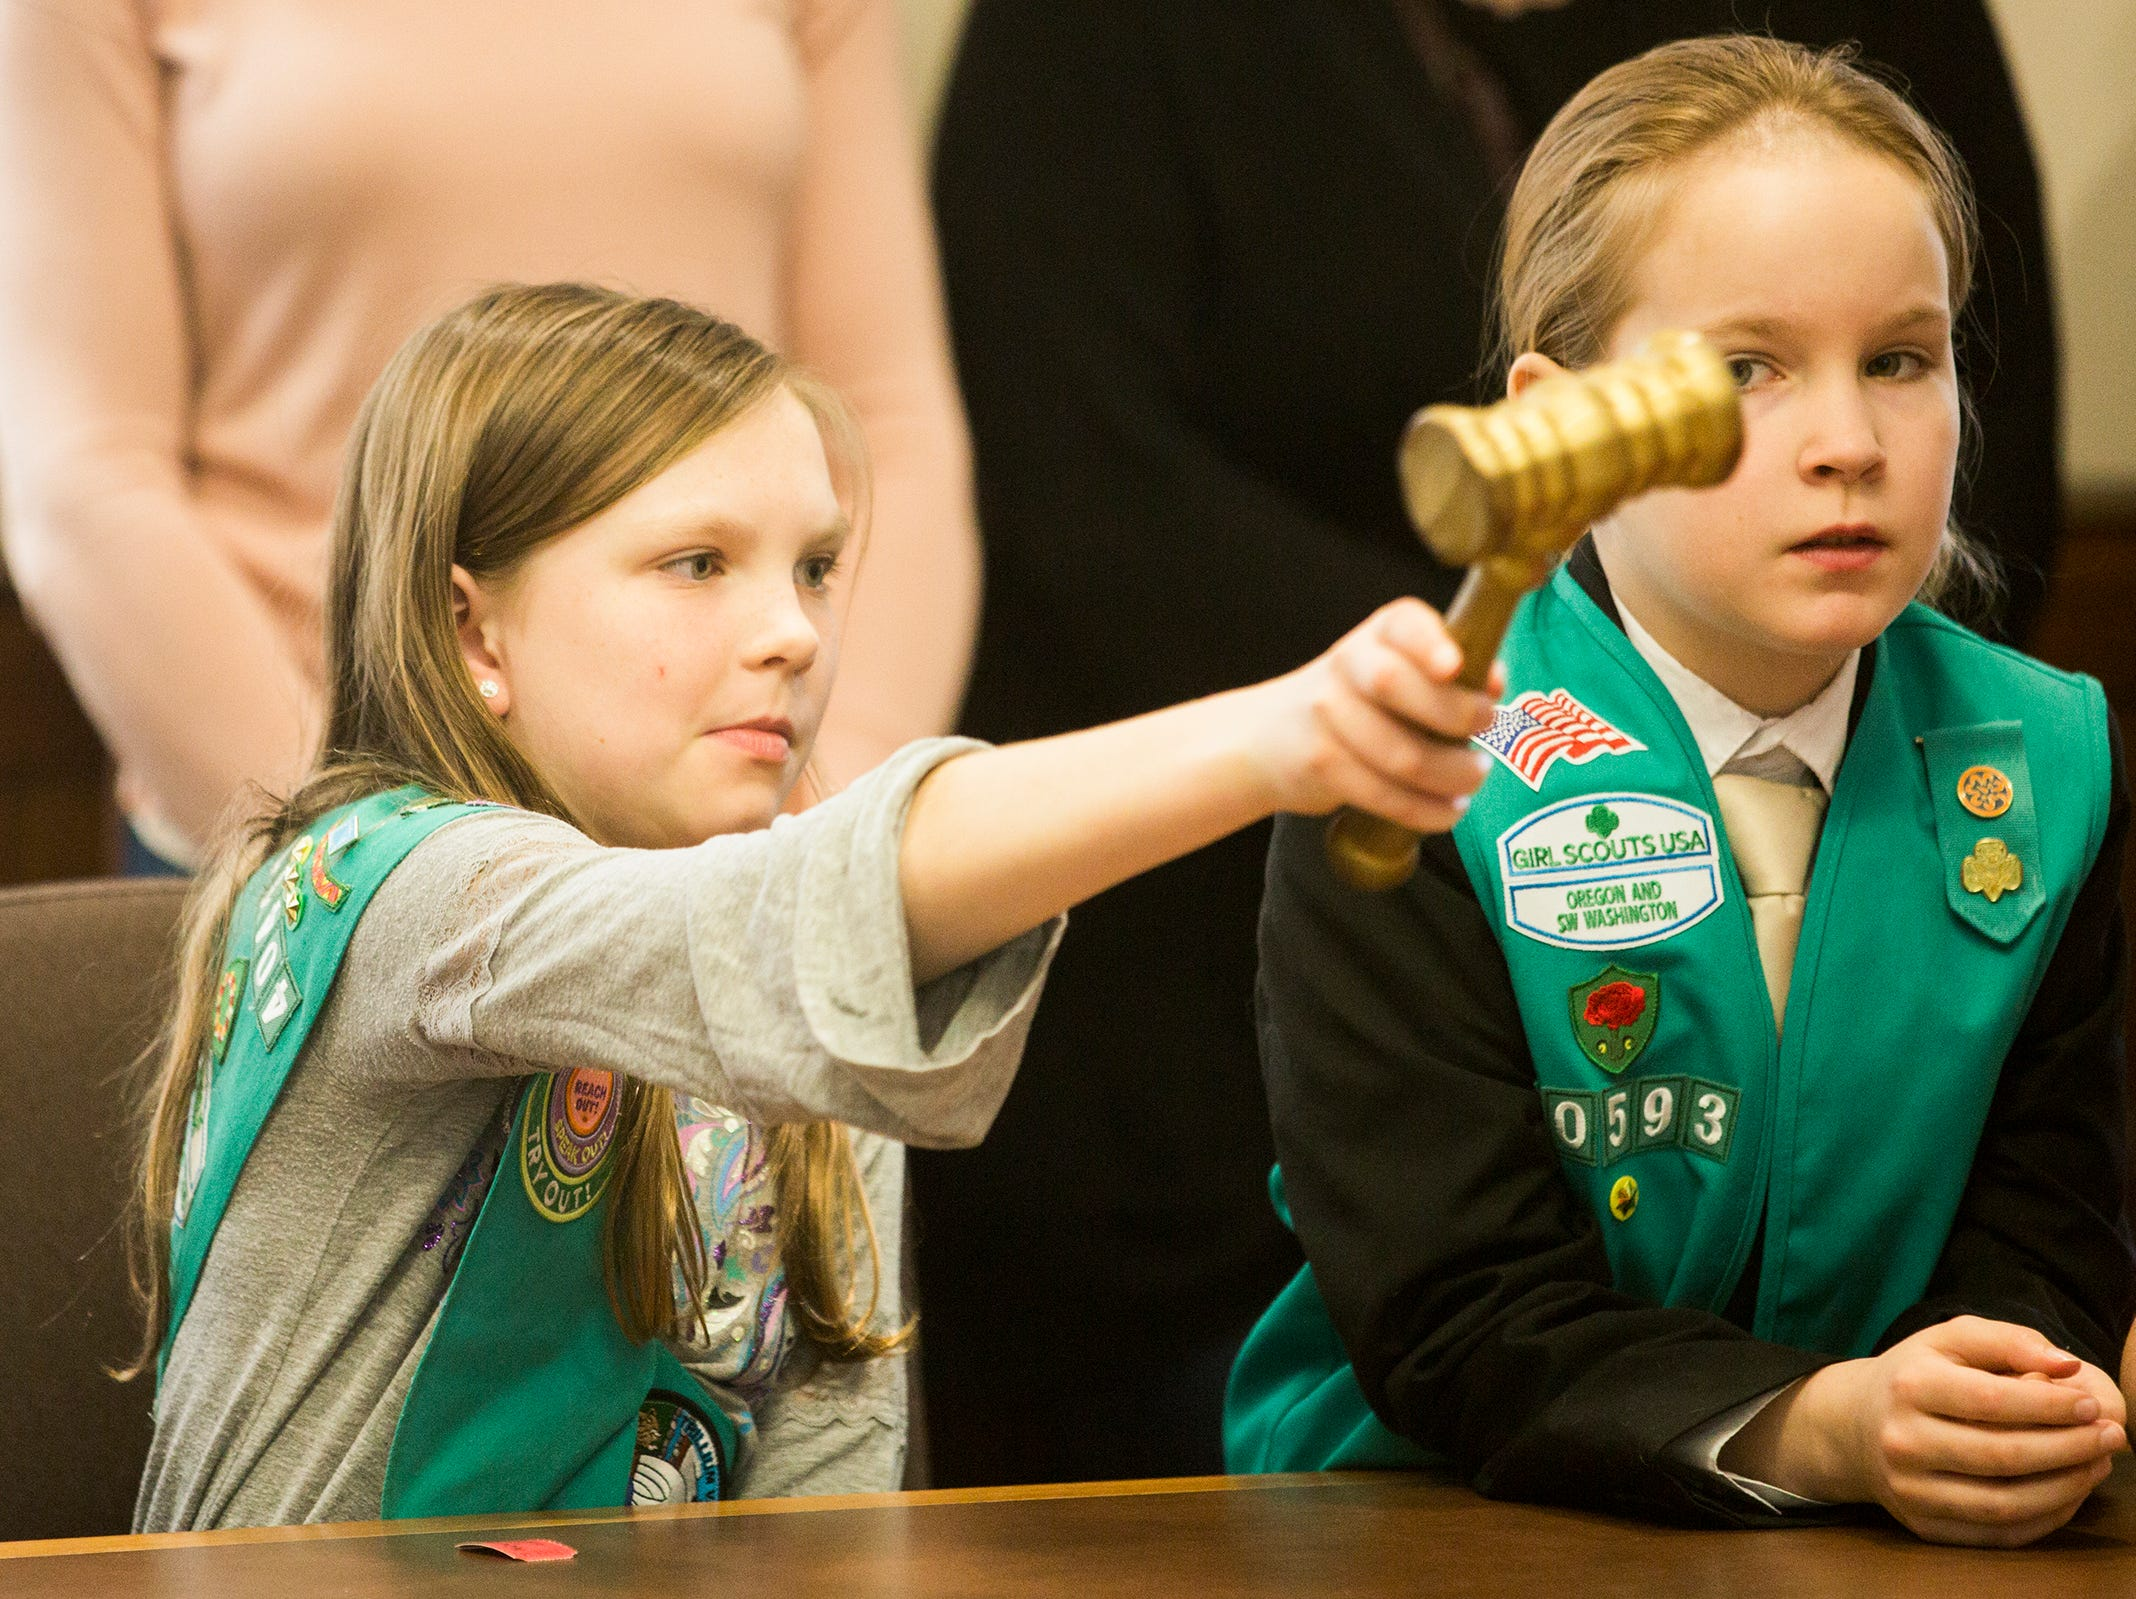 Molly Hughart, of Tigard, and Jaydian Lewis, of Portland, ask questions to a panel of members of the Oregon Legislature during Girl Scout Leadership Day at the Oregon State Capitol in Salem March 12, 2019.